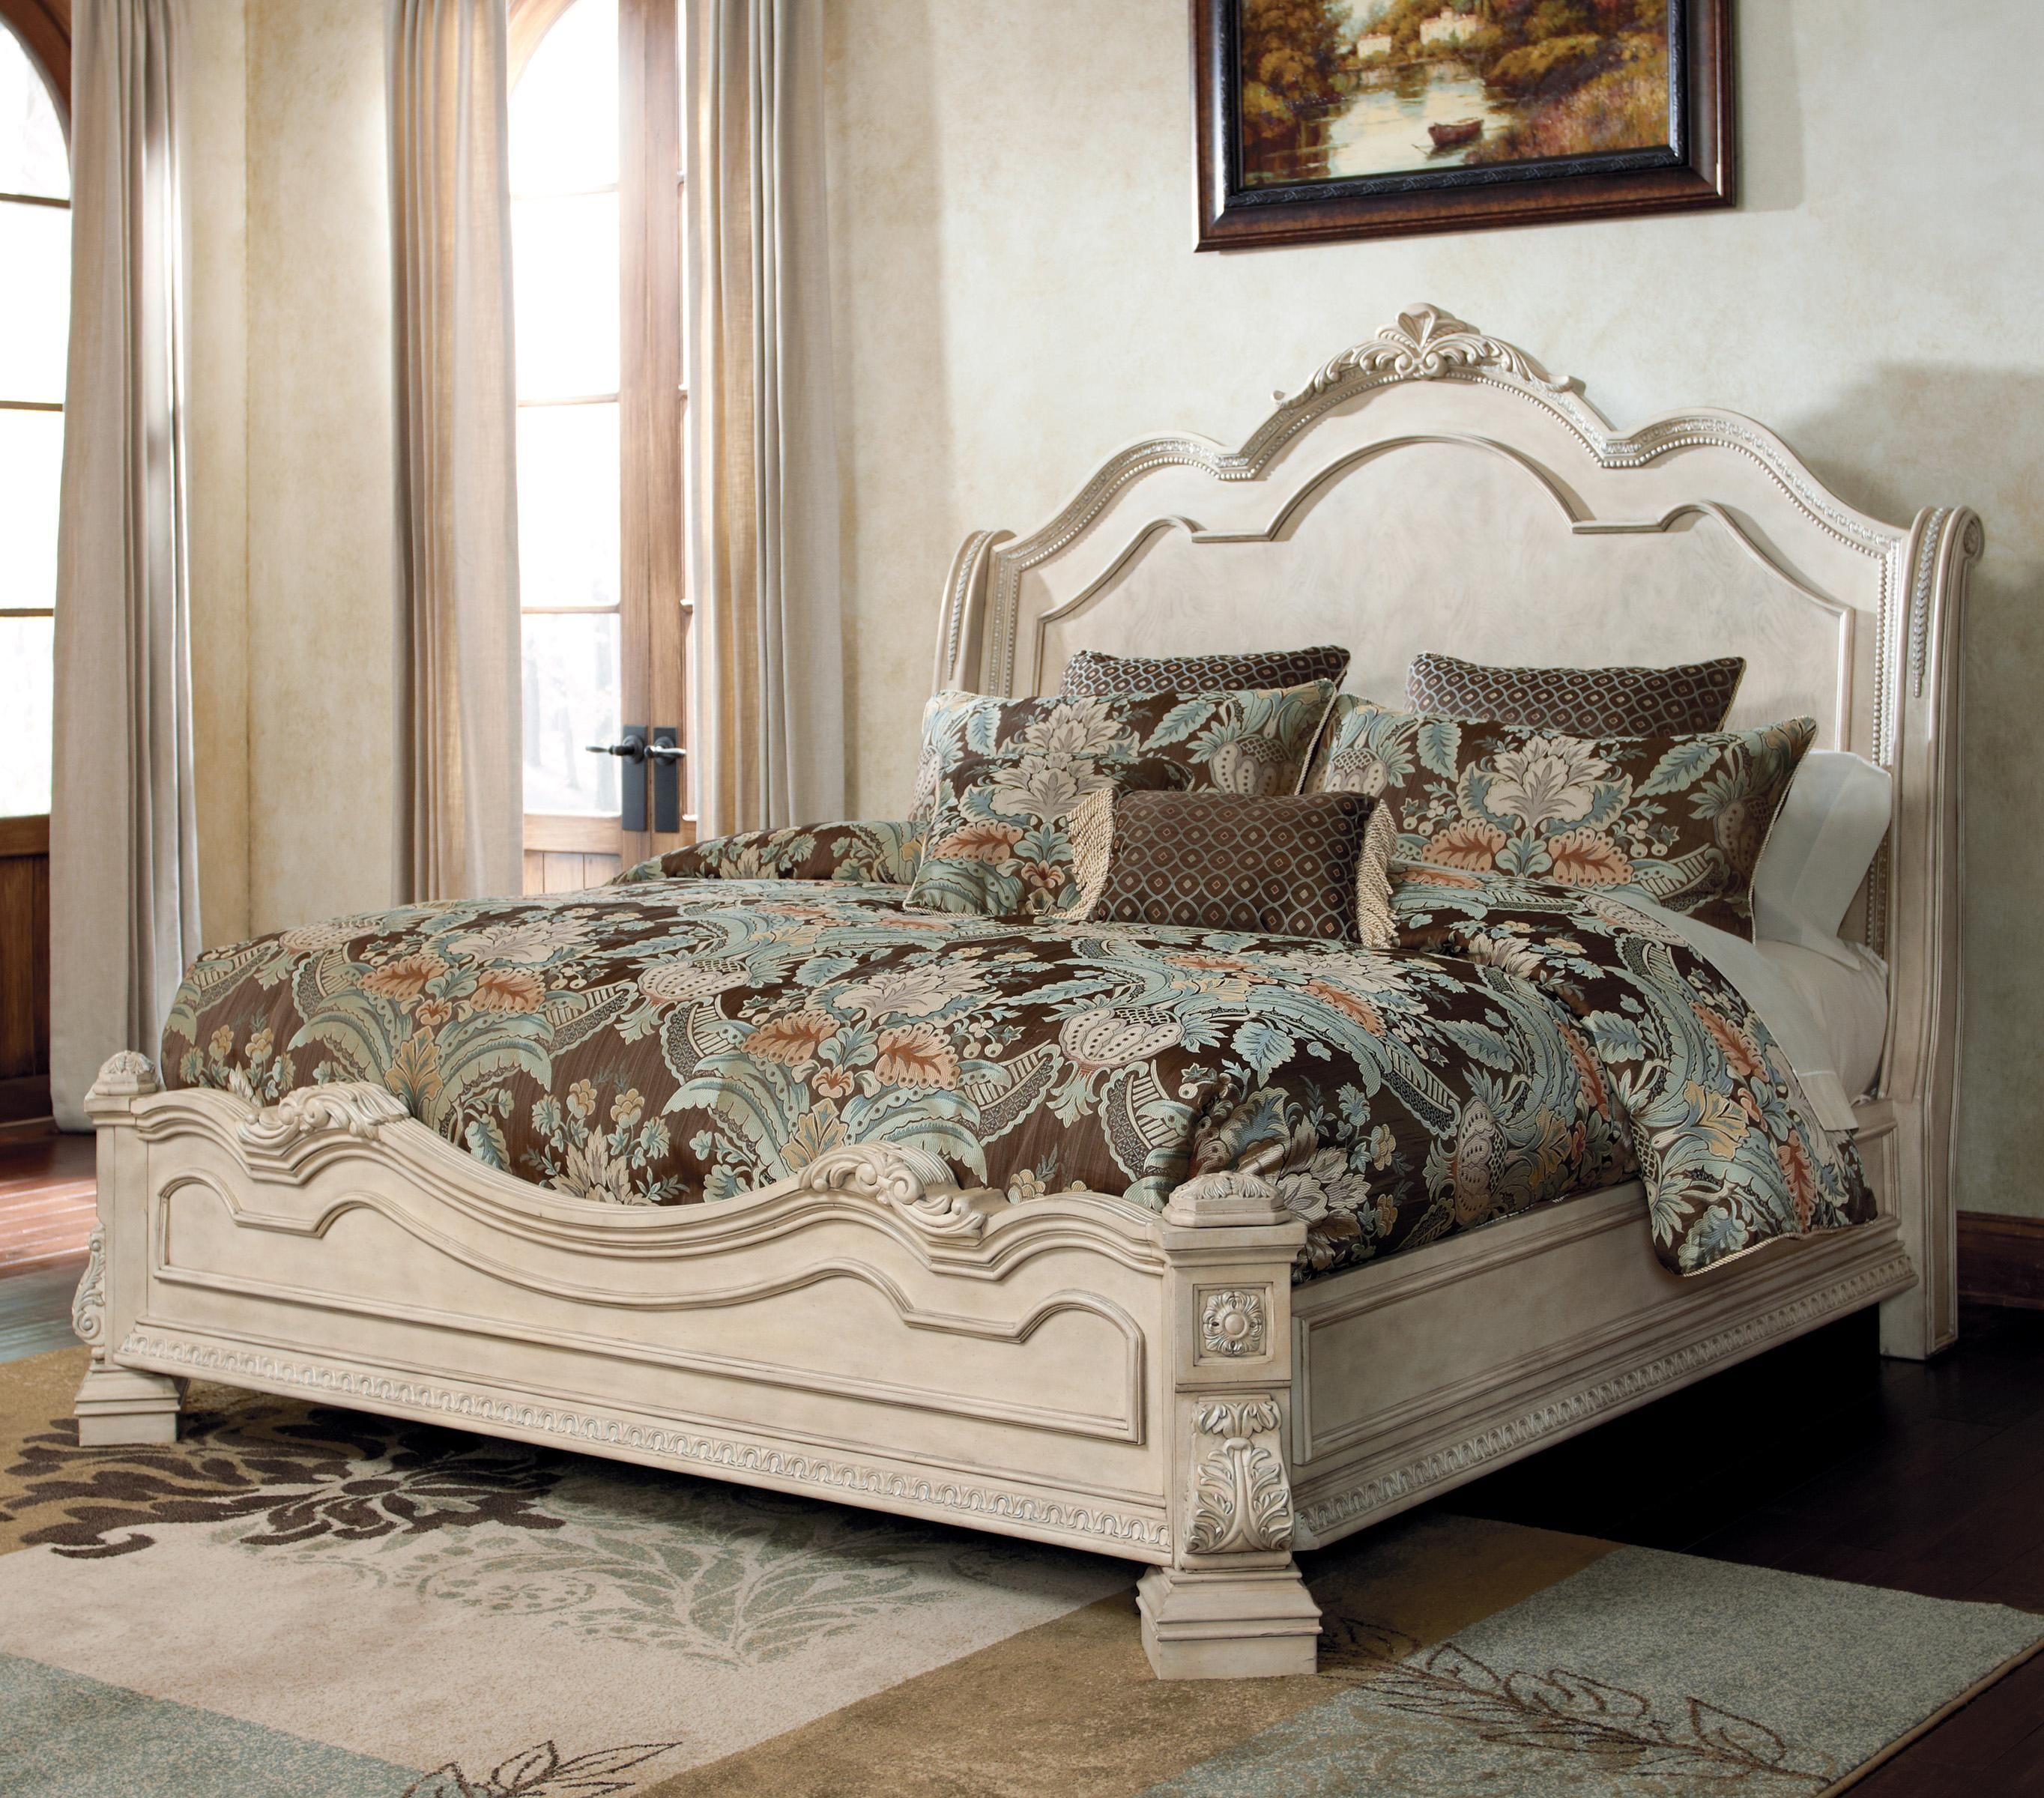 The Ortanique Traditional Queen Bed With Sleigh Headboard By Ashley Millennium Is Available In